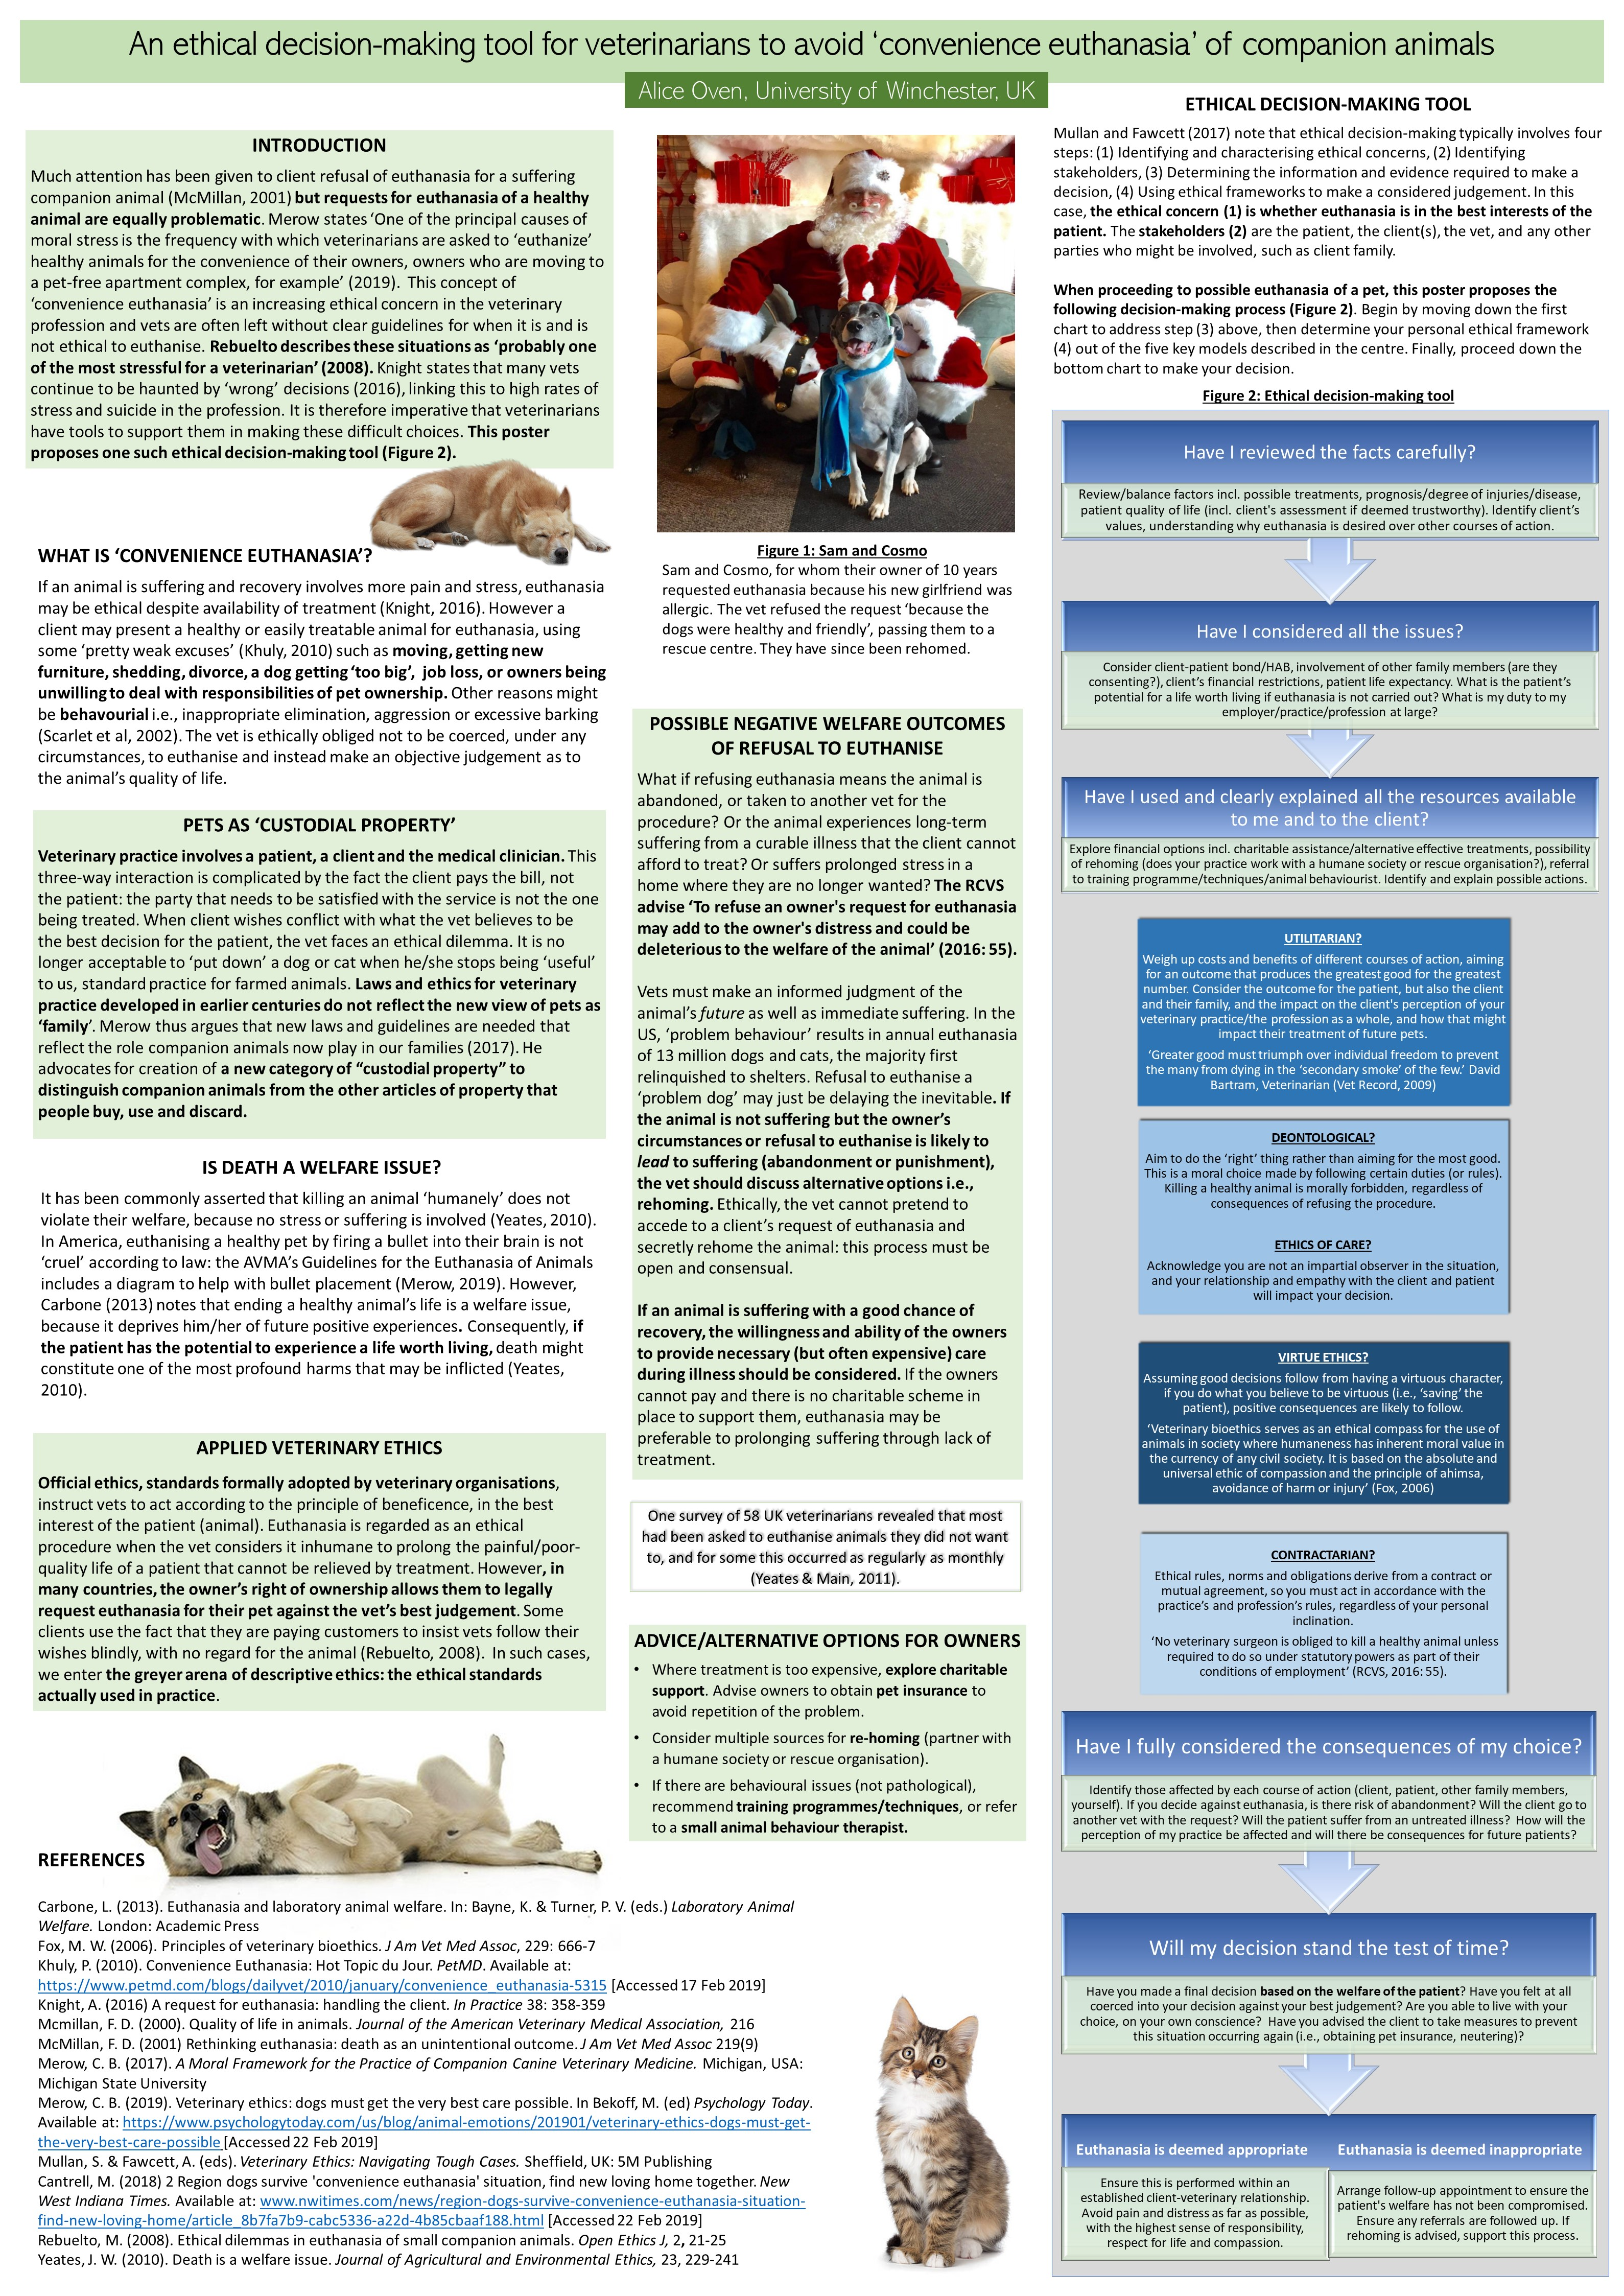 An ethical decision-making tool for veterinarians to avoid